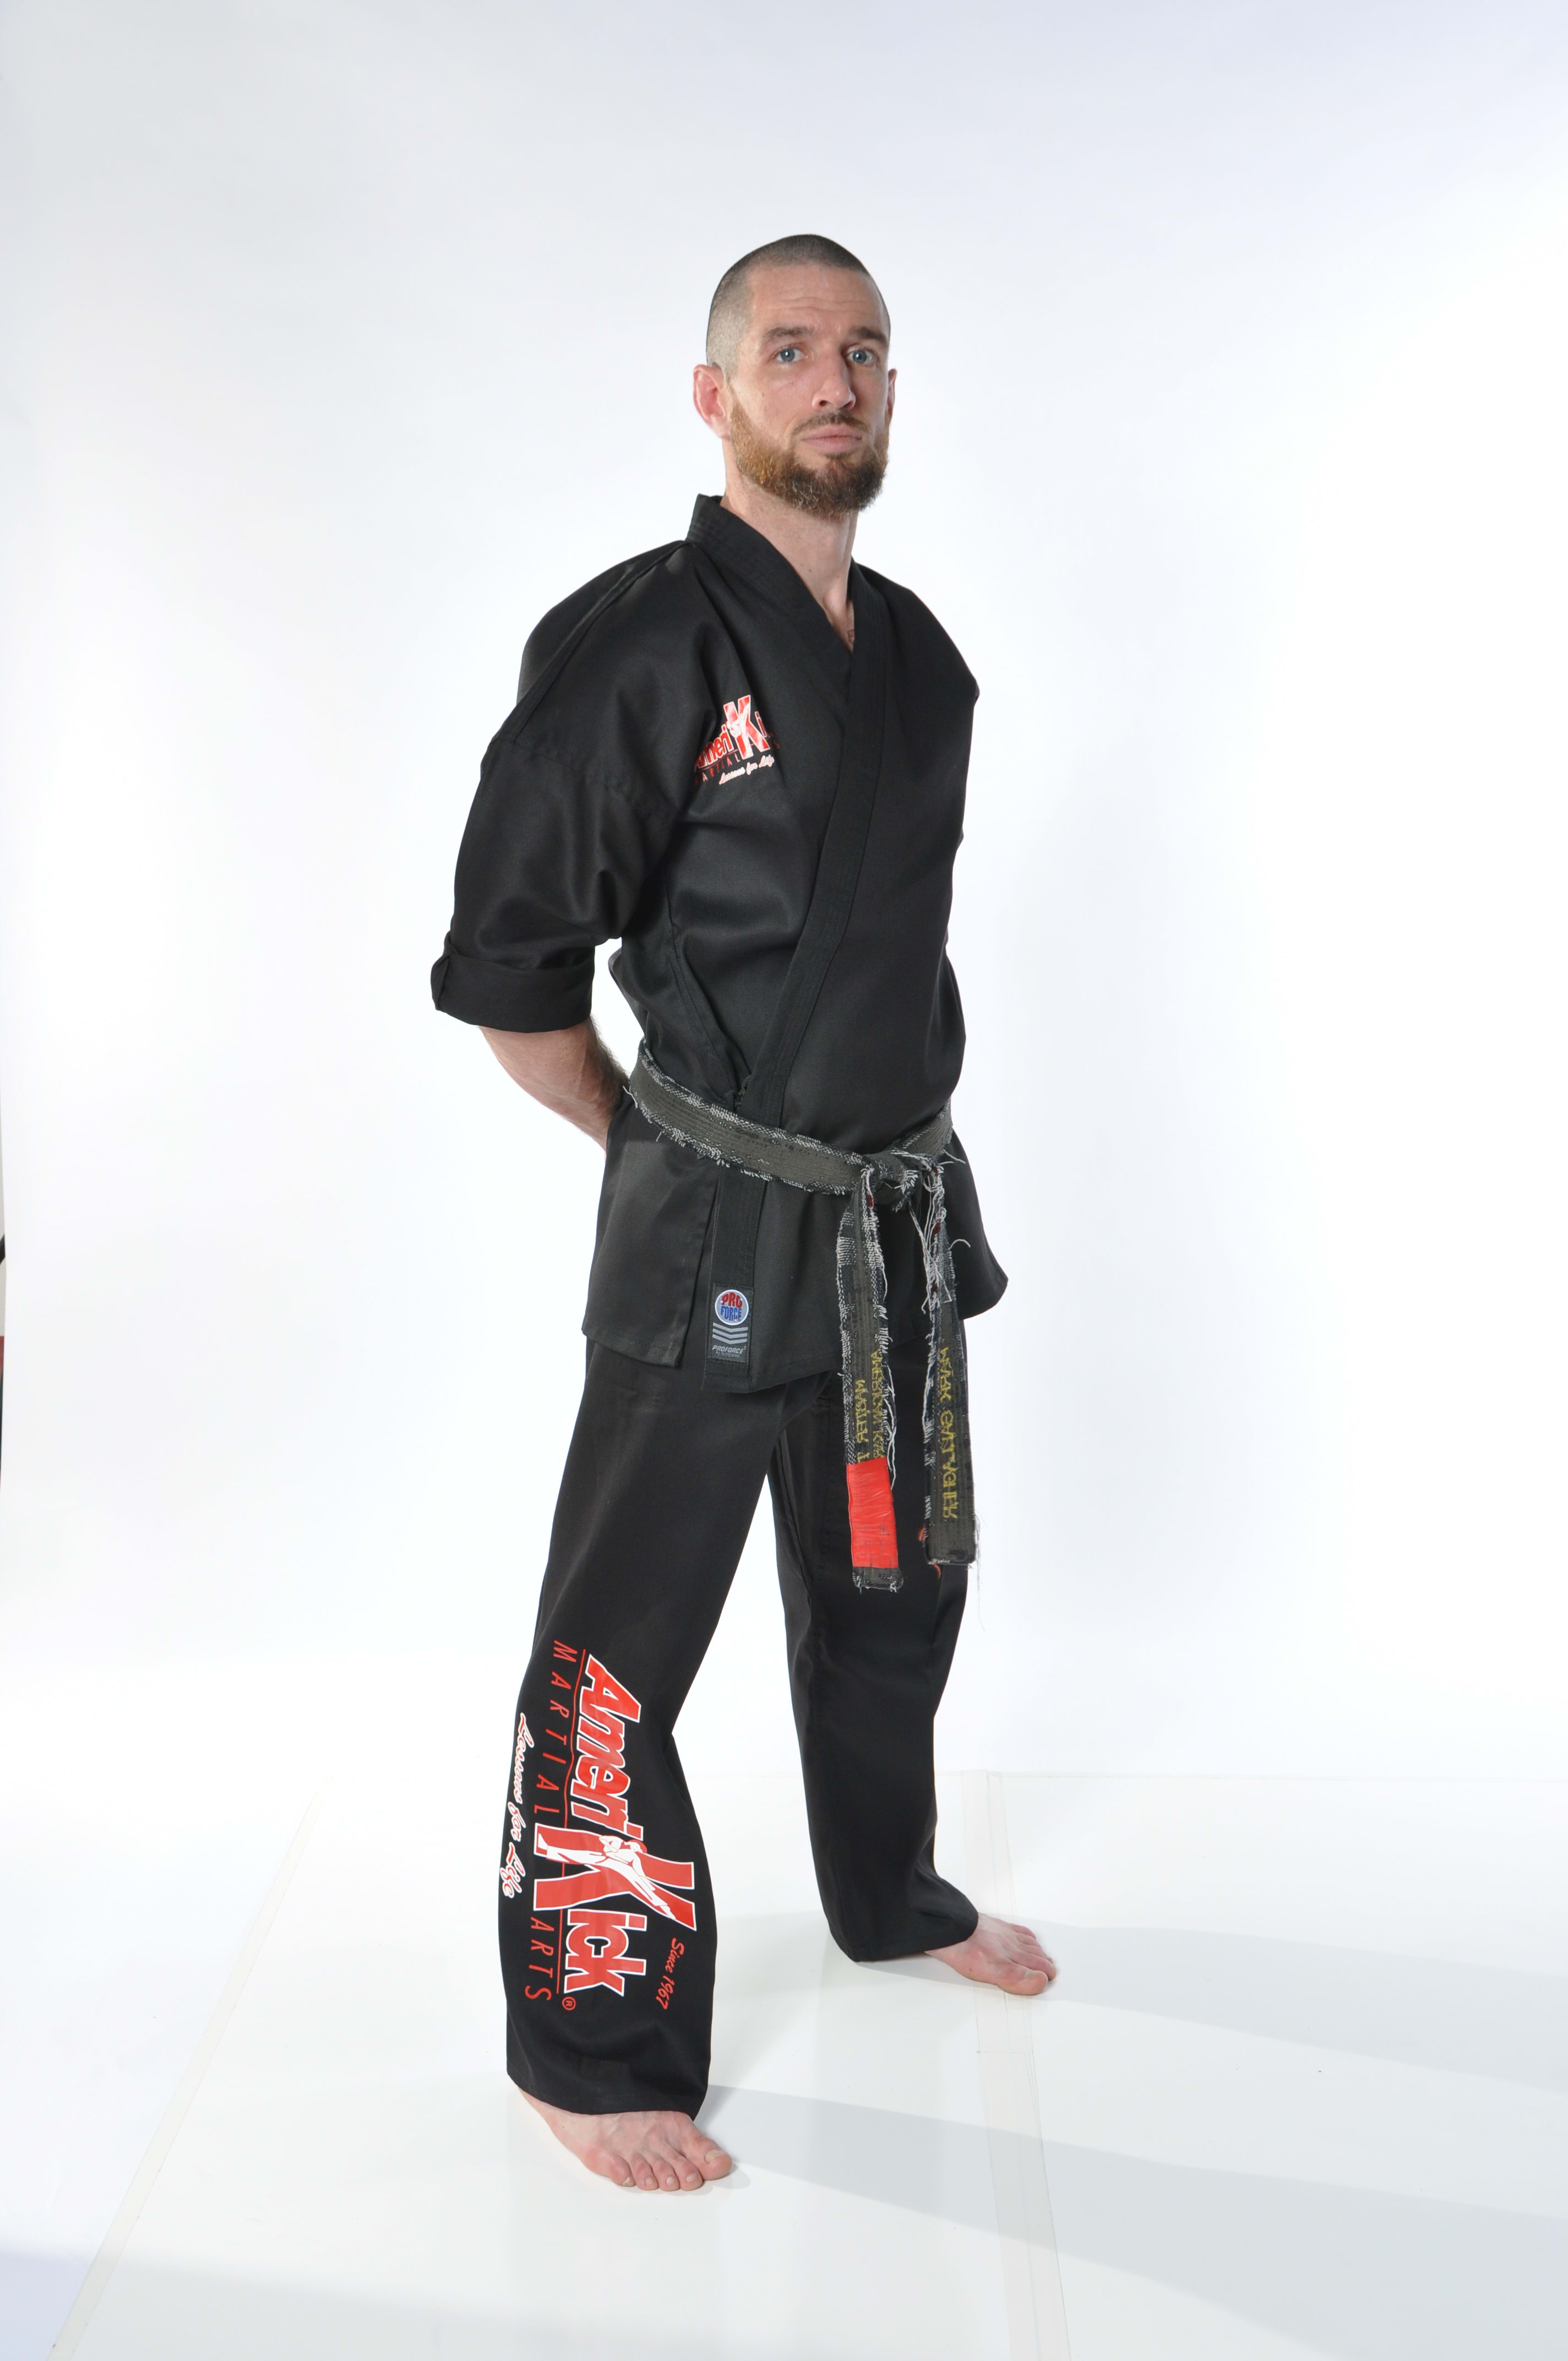 Mark Gallagher in Philadelphia - Amerikick Martial Arts Northeast Philly